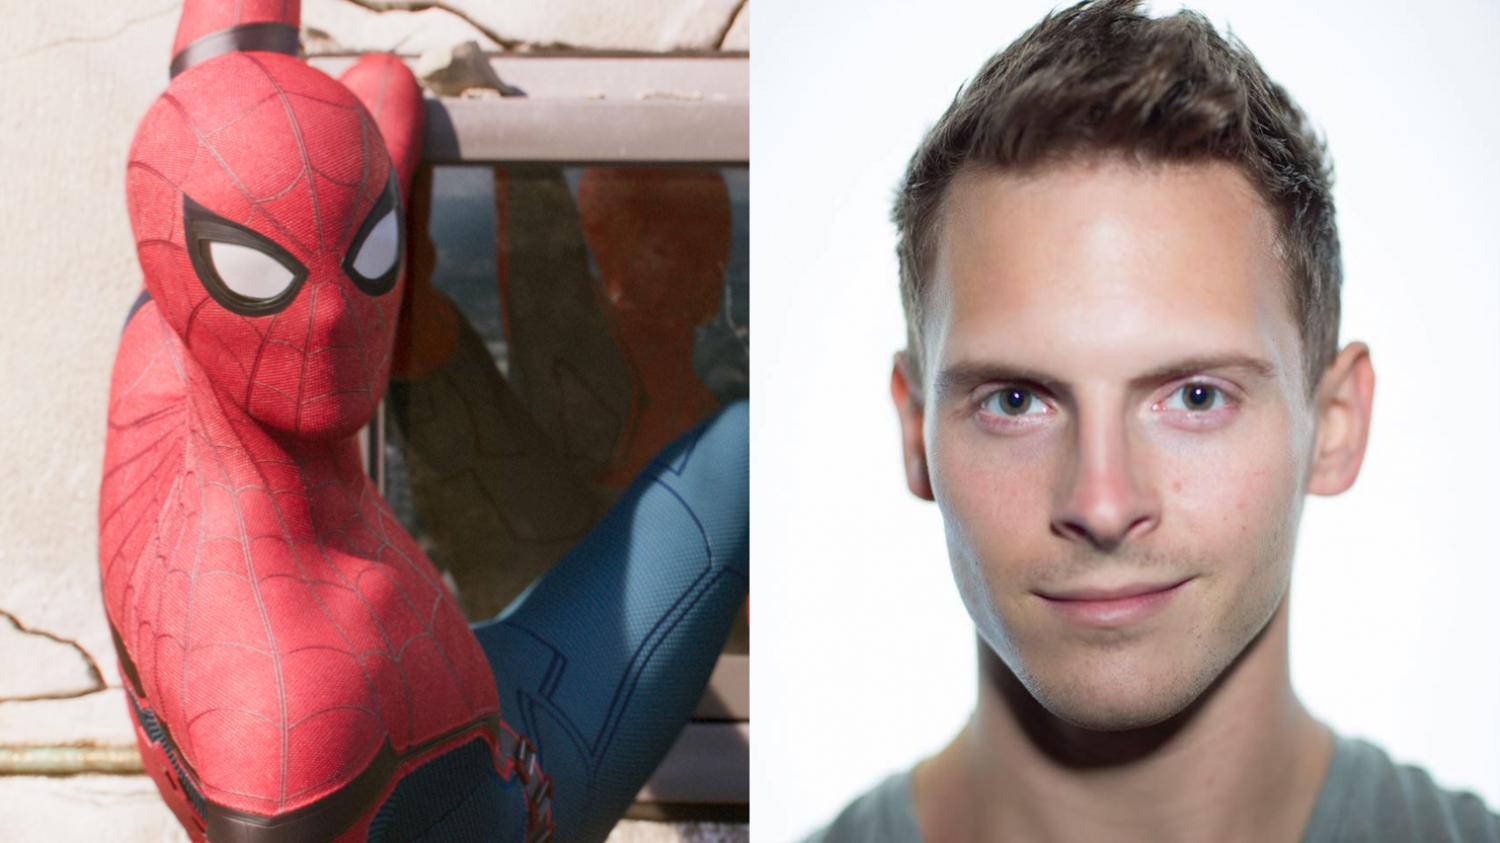 Chris Silcox, an Illinois alum and ex-NCAA gymnast, landed a role in Spider-Man: Homecoming as a stunt double.